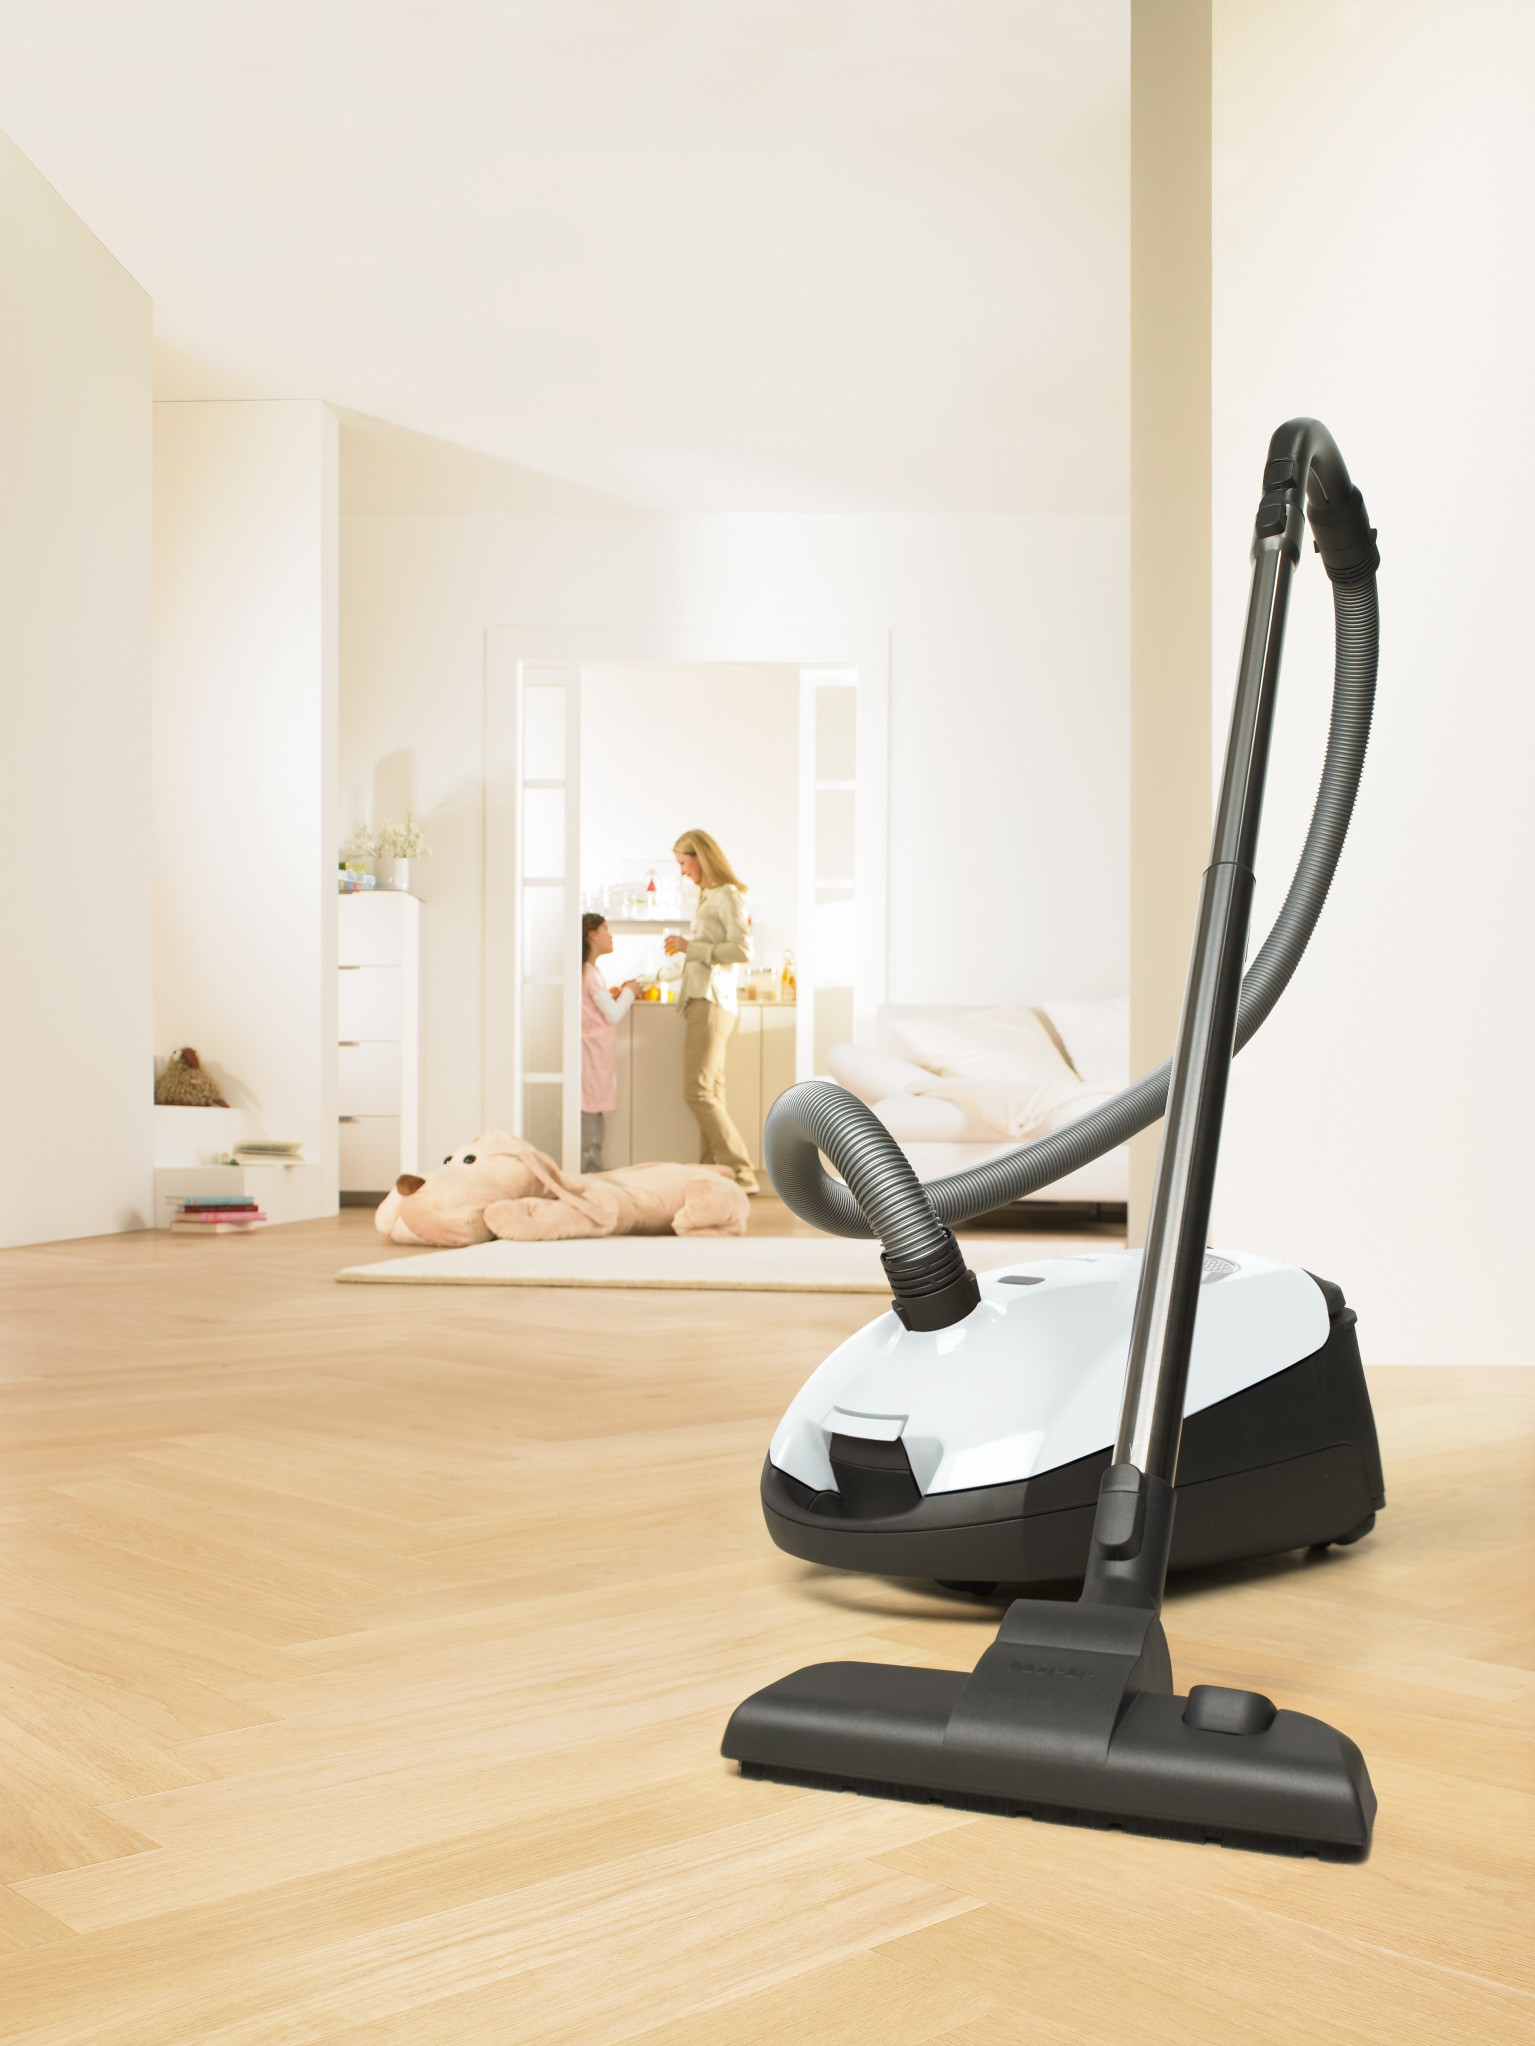 modern-steam-cleaning-for-wood-floor-design-in-black-and-white-combination-on-beige-floor-in-spacious-room.jpg